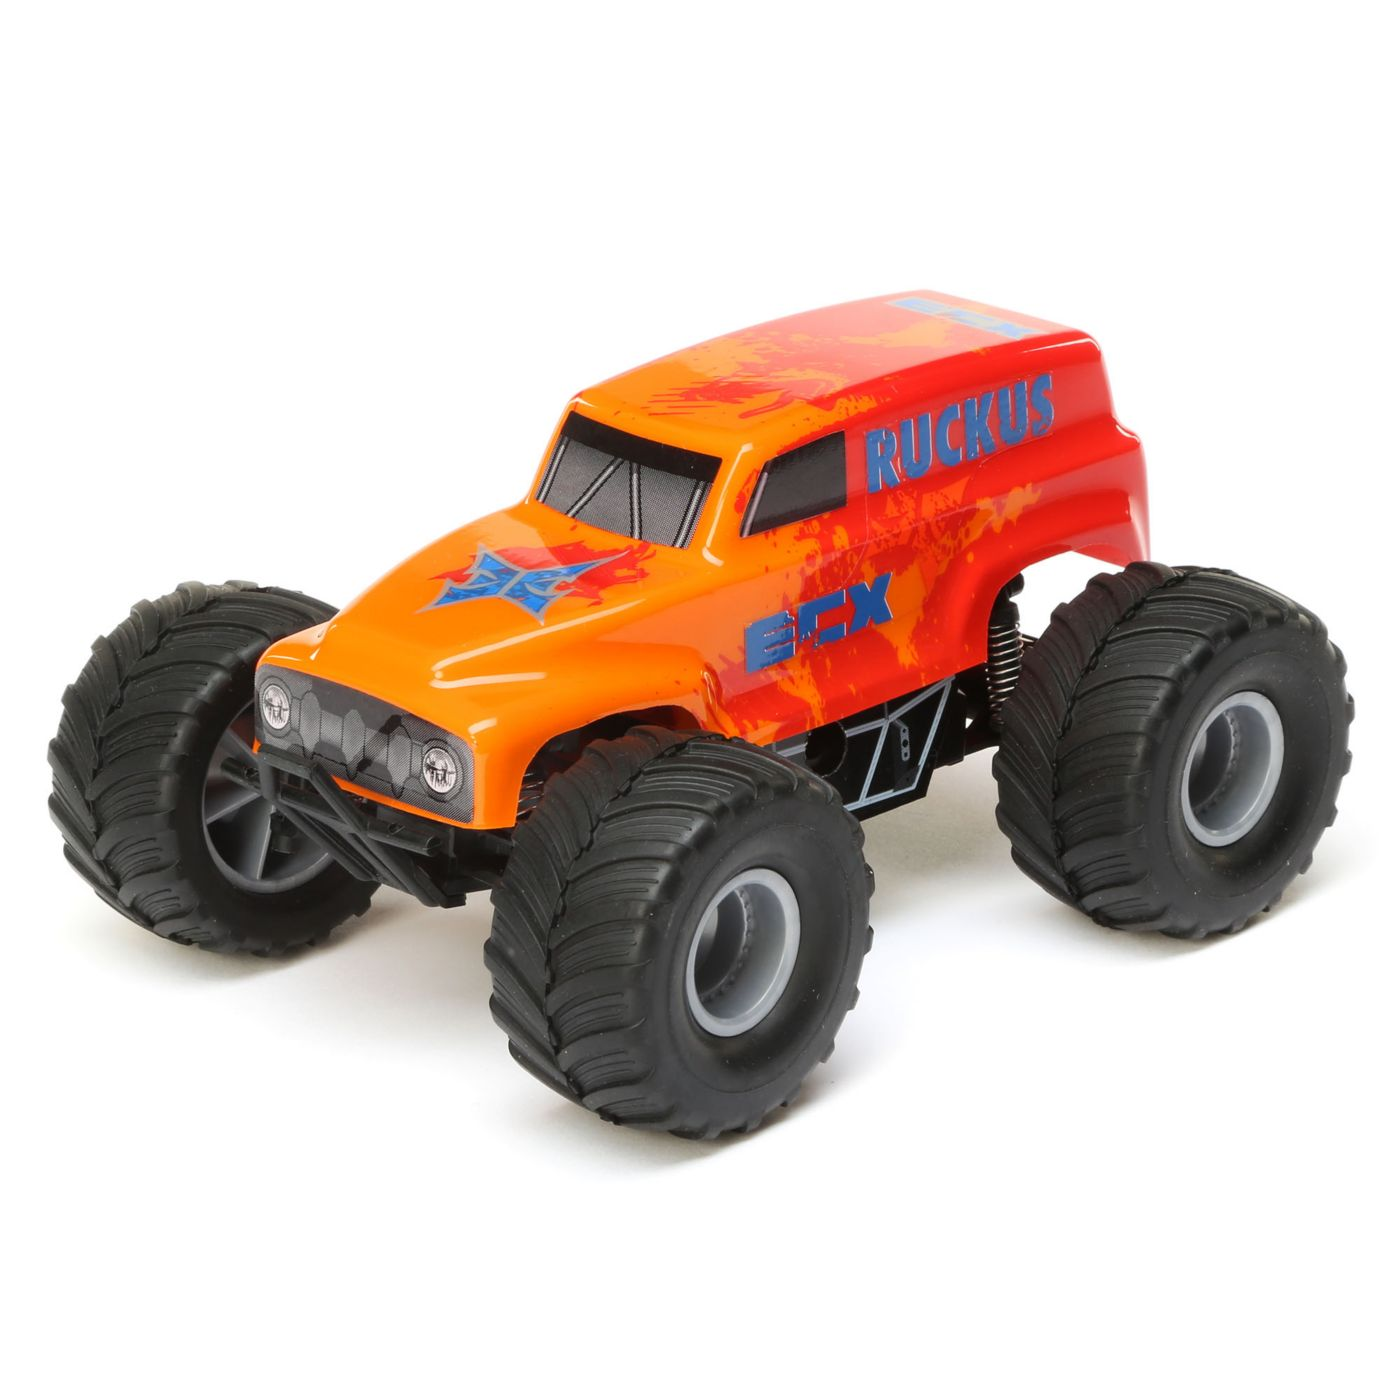 ECX Micro Ruckus 1/28-scale Monster Truck